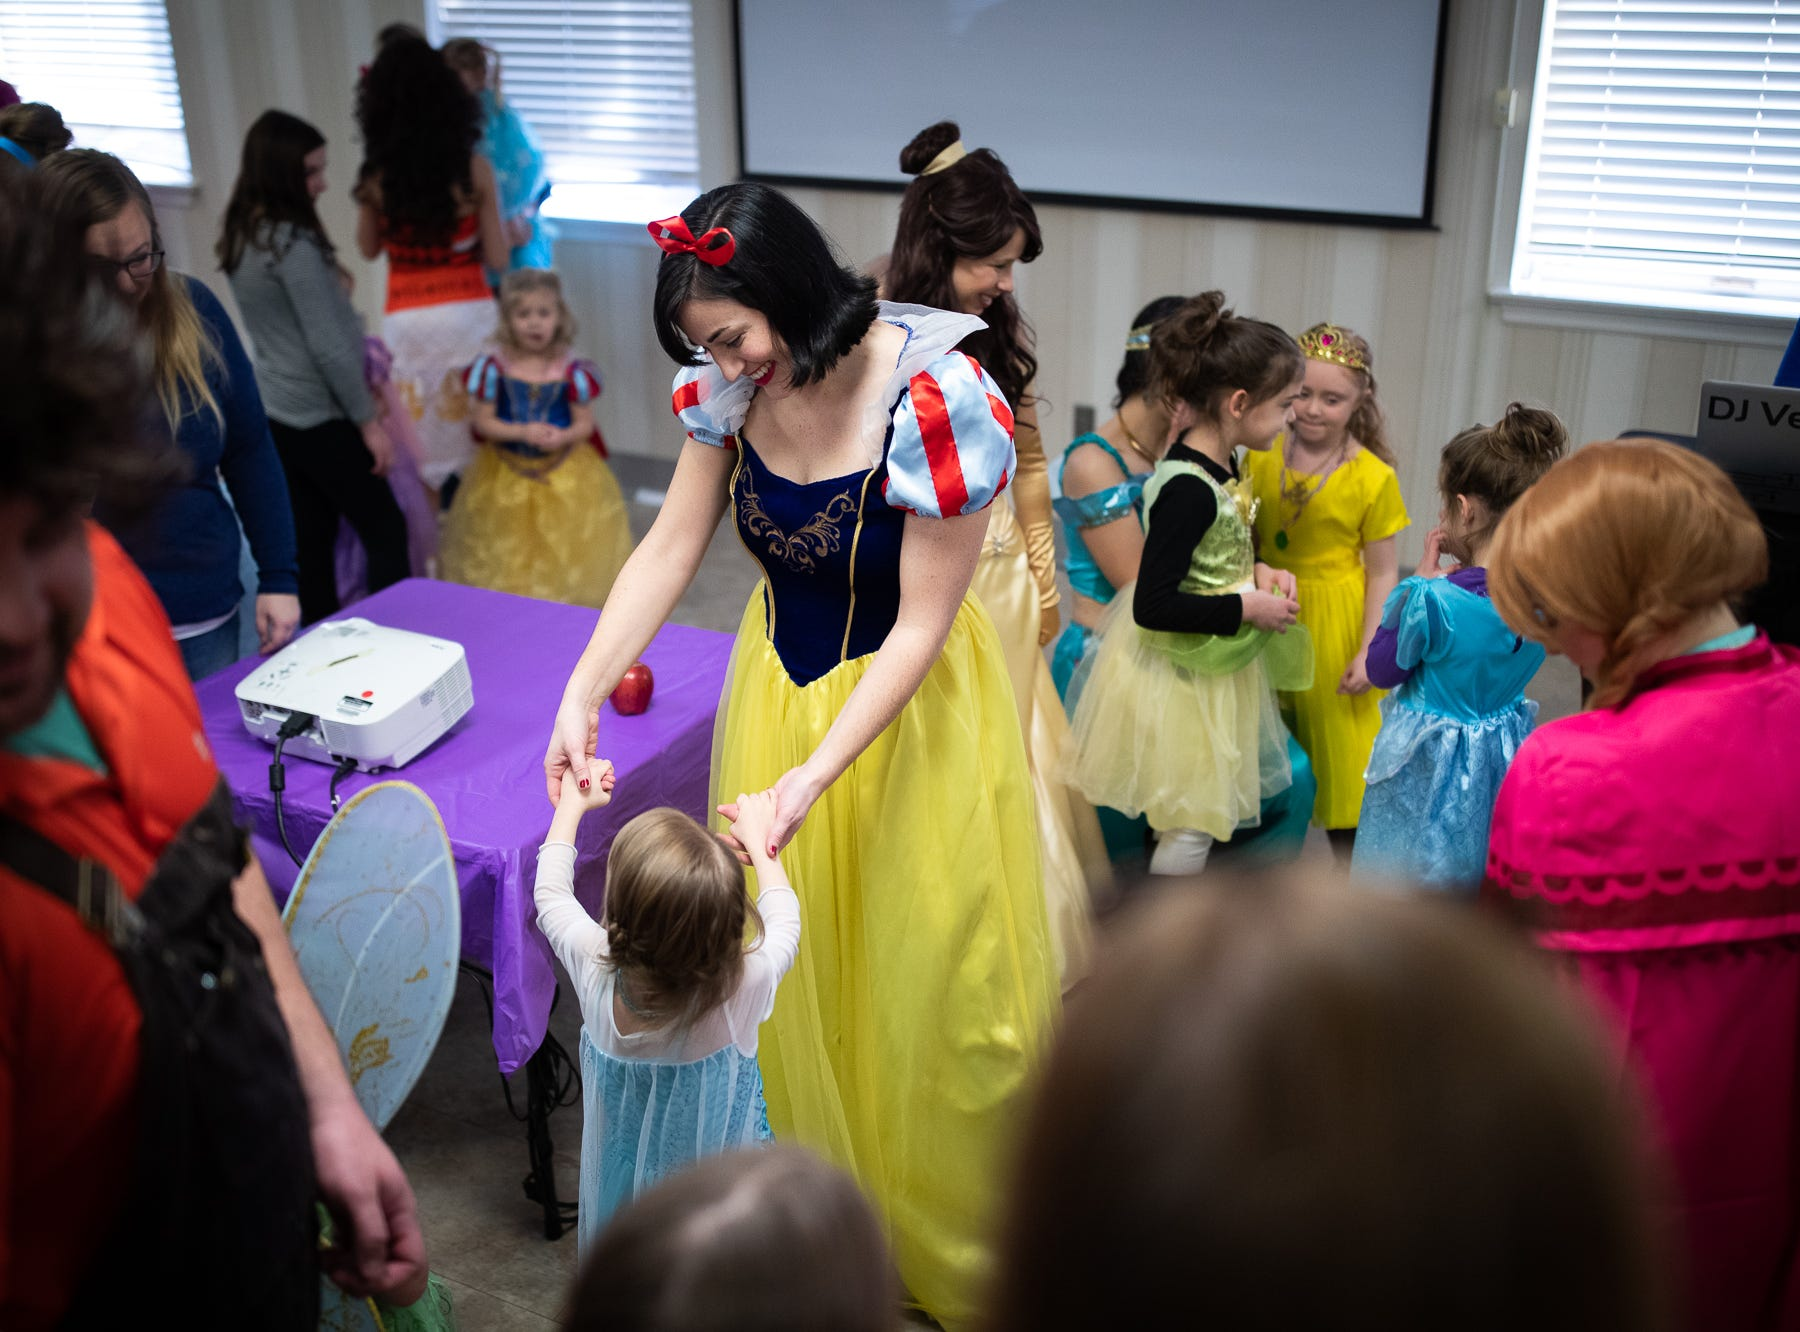 Princess Snow White dances with kids during a princess teatime hosted by the Black Rose Rollers, Saturday, Feb. 9, 2019, at the Hanover YWCA.